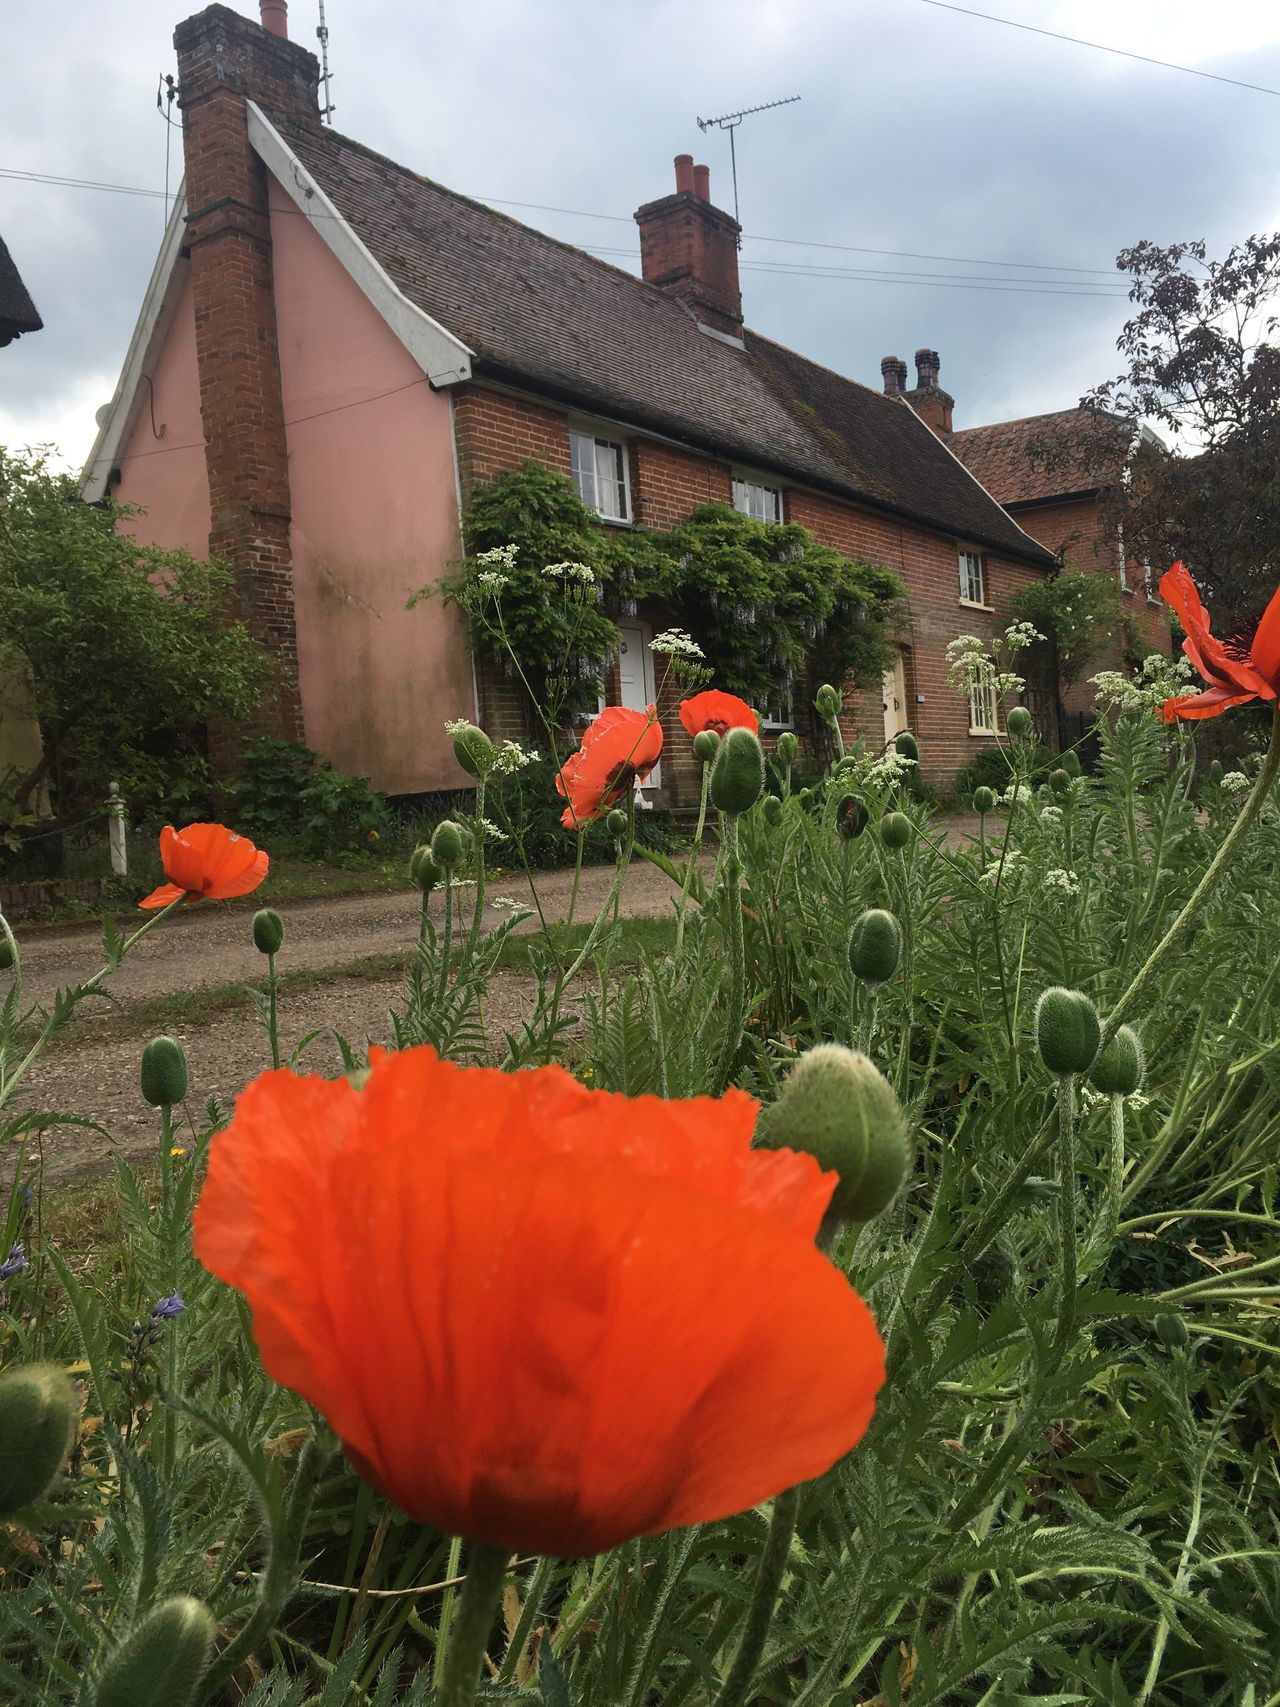 Poppy Flower Suffolk village Nature Architecture Cottage